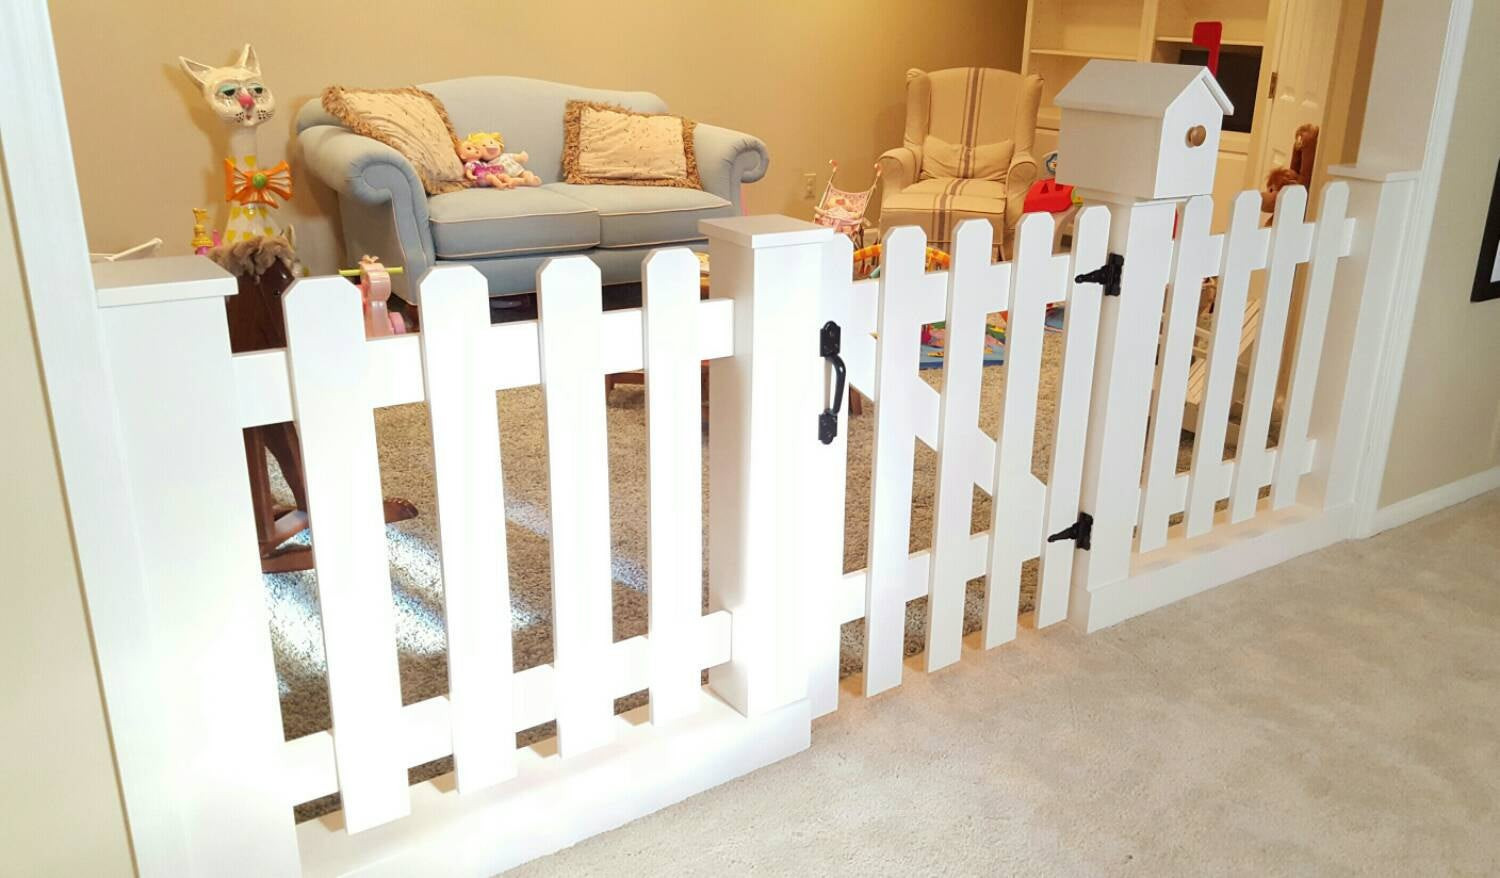 Best ideas about DIY Baby Fence . Save or Pin Baby Gate Playroom Picket Fence Room Divider Now.